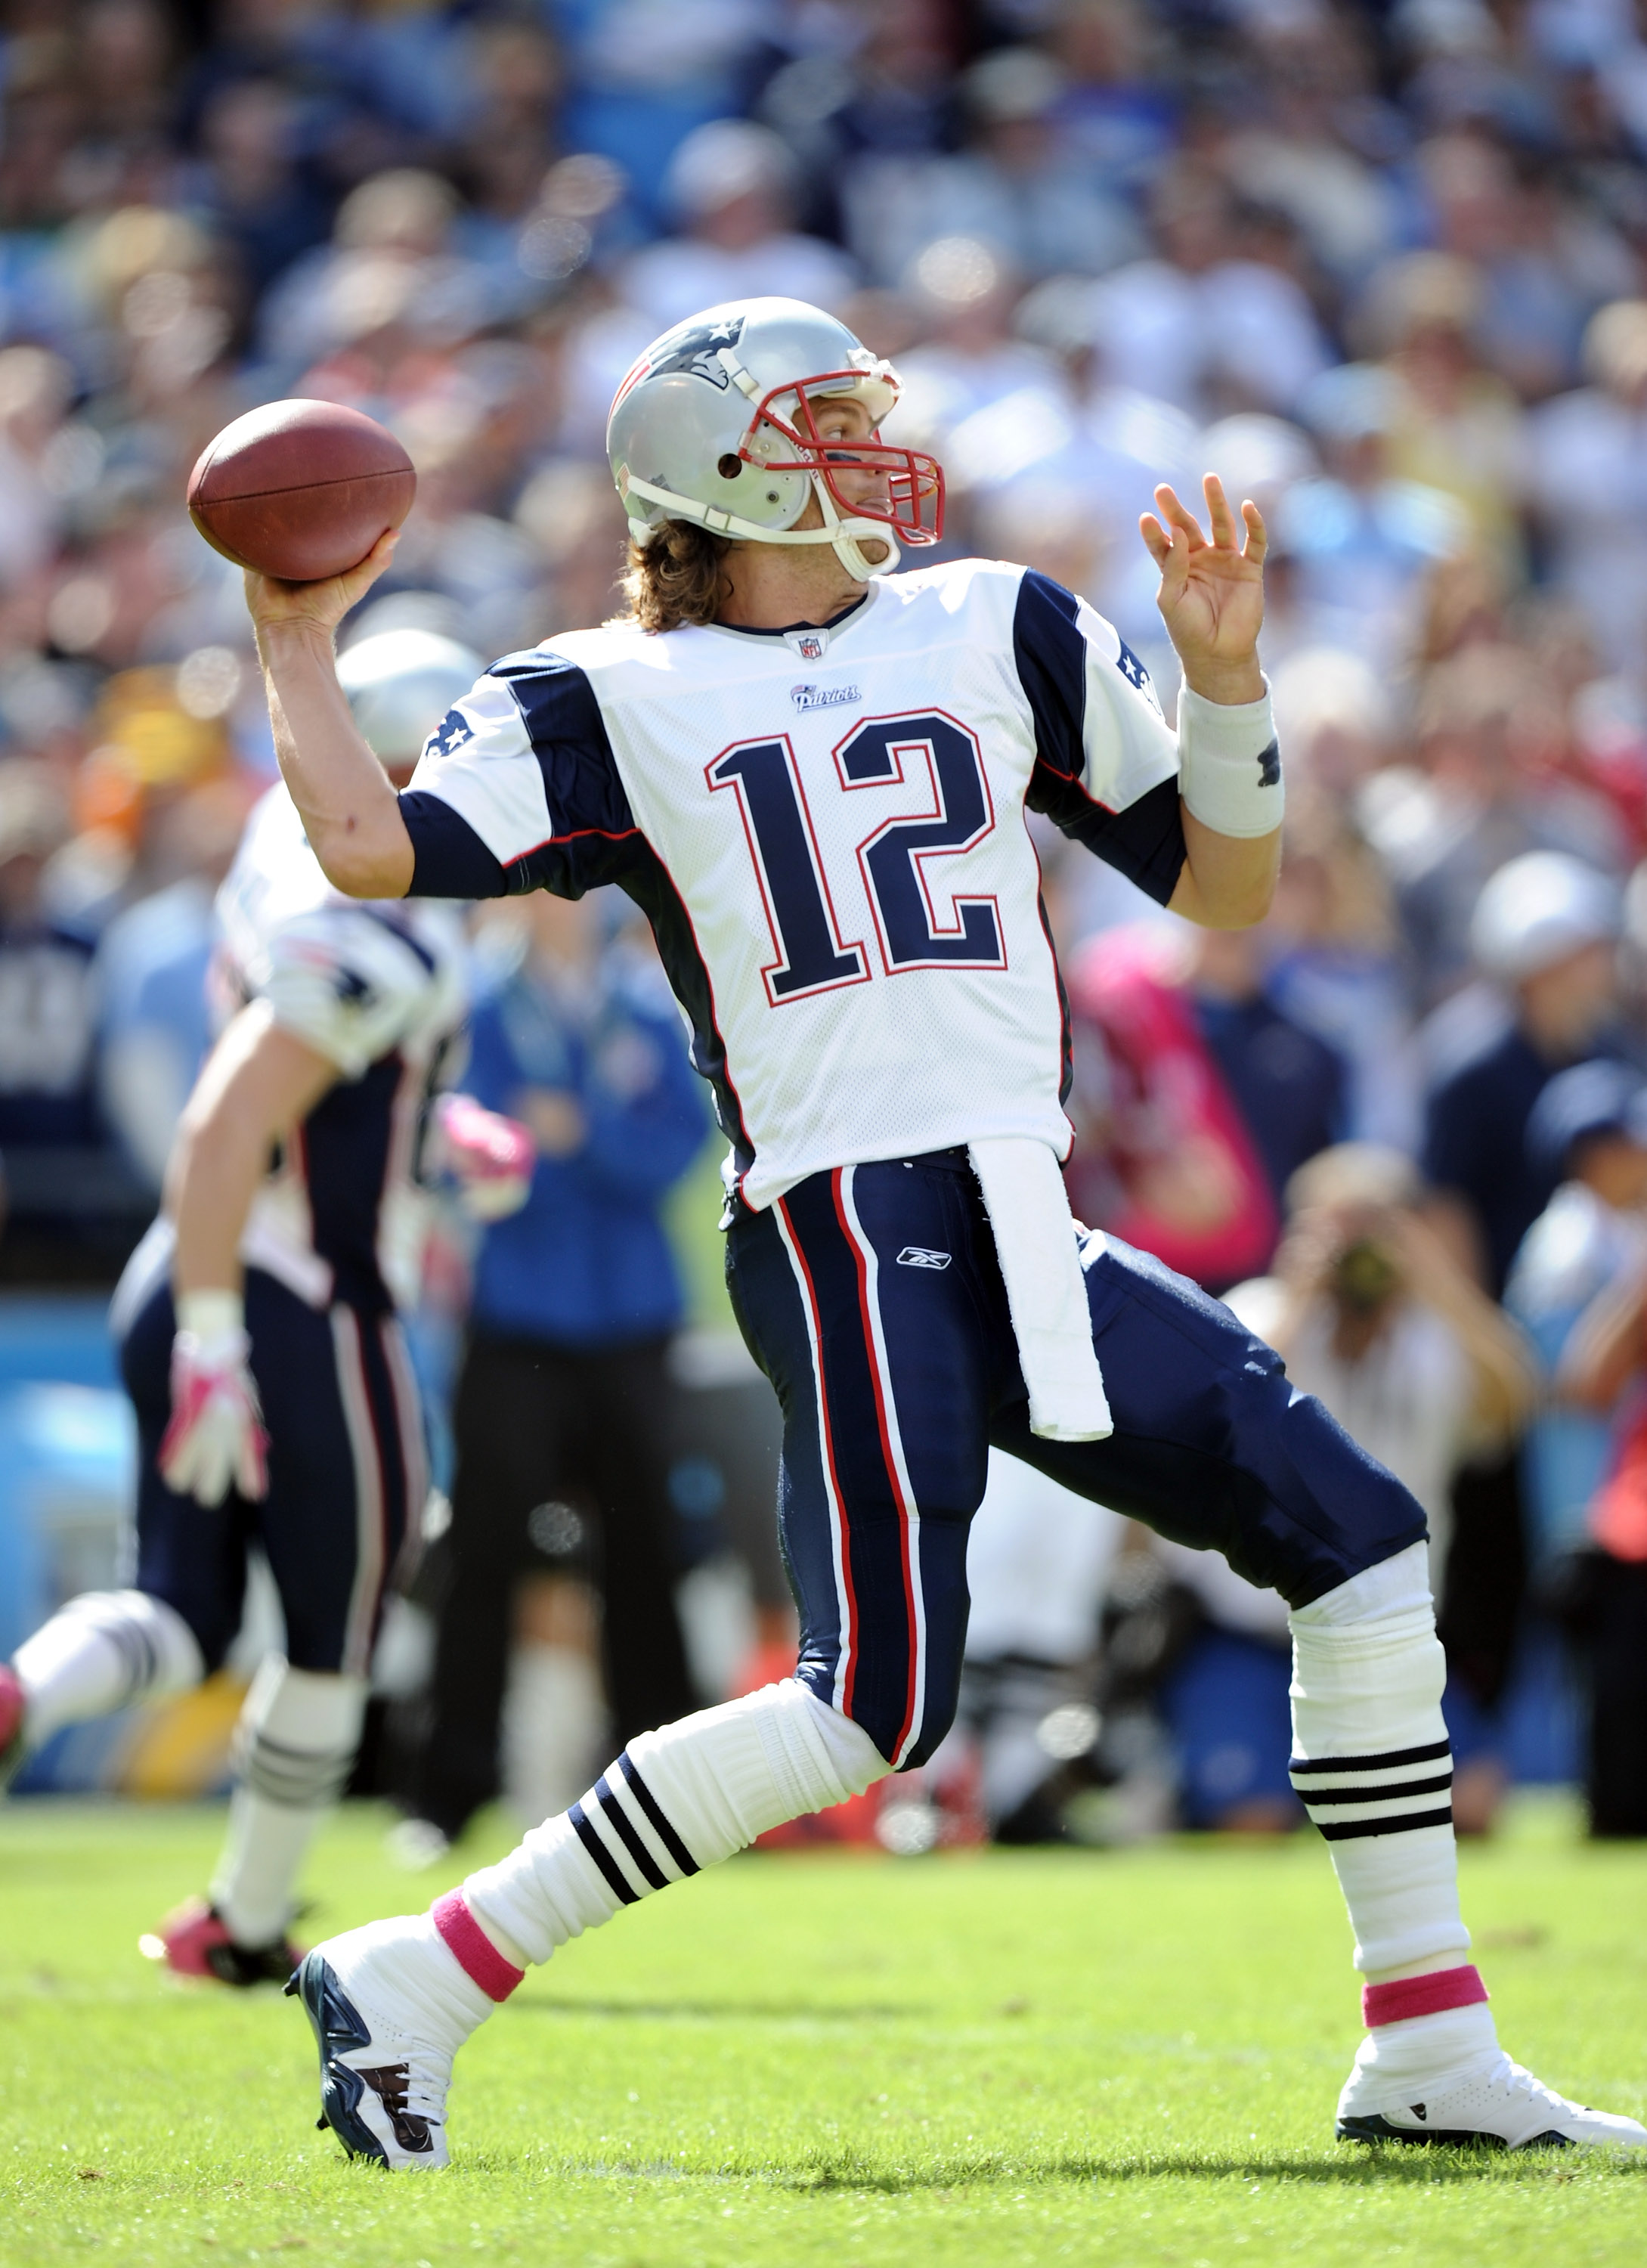 SAN DIEGO - OCTOBER 24:  Tom Brady #12 of the  New England Patriots passes in the pocket against the San Diego Chargers during the first quarter at Qualcomm Stadium on October 24, 2010 in San Diego, California.  (Photo by Harry How/Getty Images)